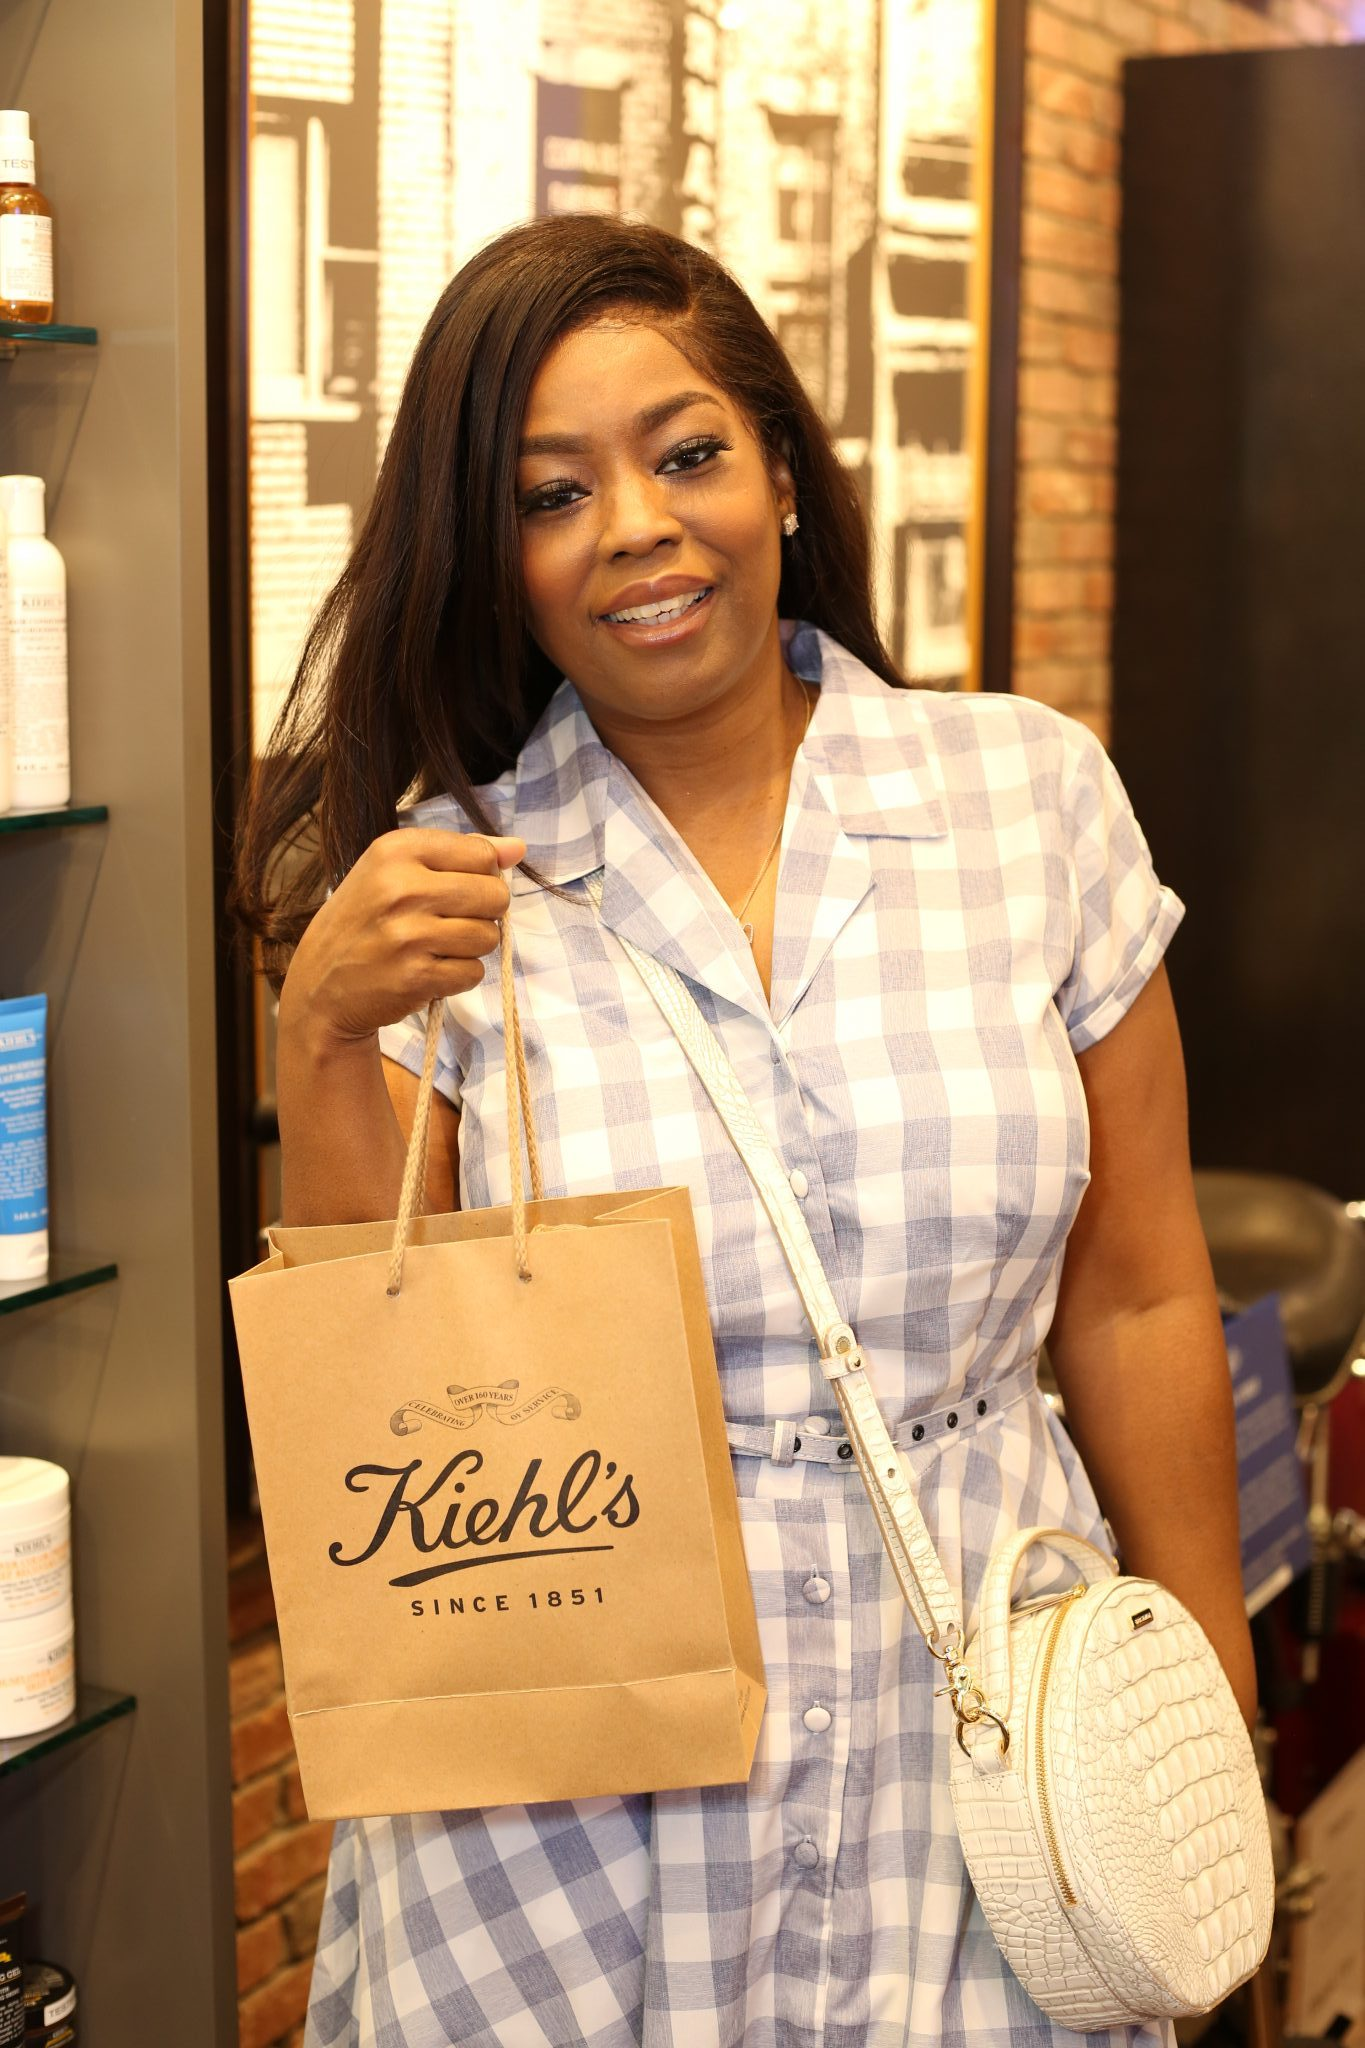 Kiehl's Launches New Apothecary Preparations